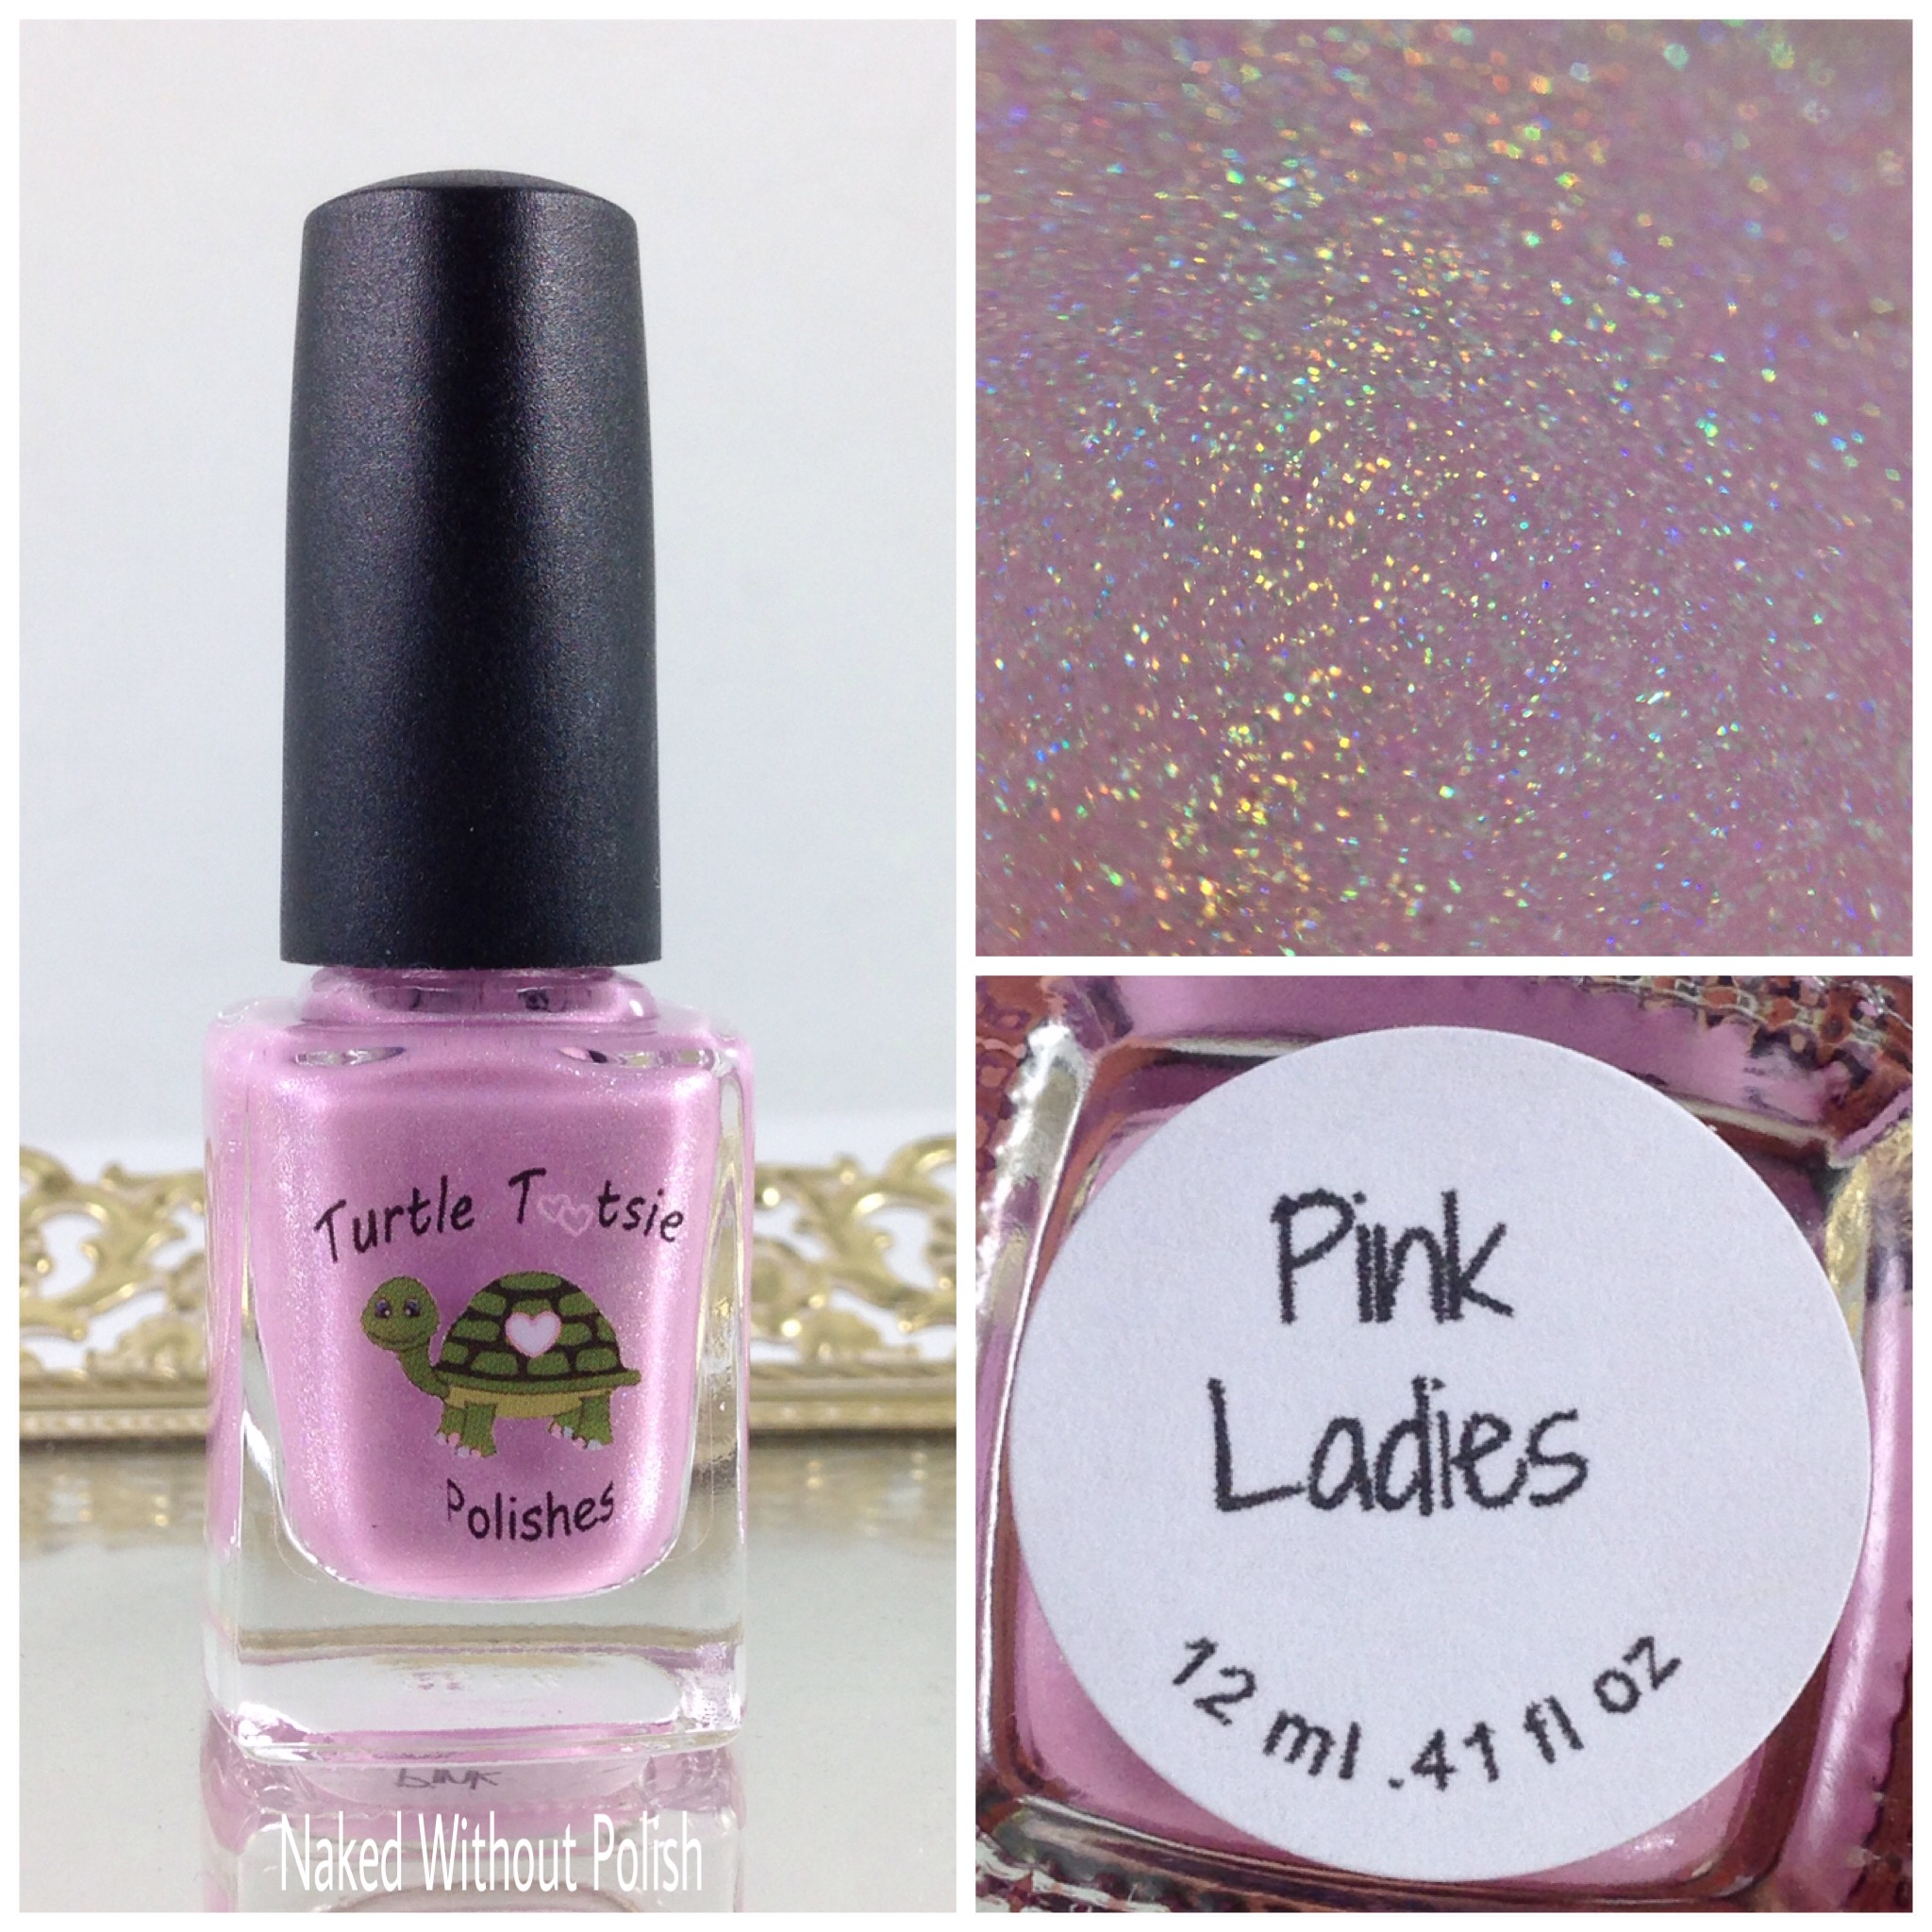 Turtle-Tootsie-Polishes-Pink-Ladies-1